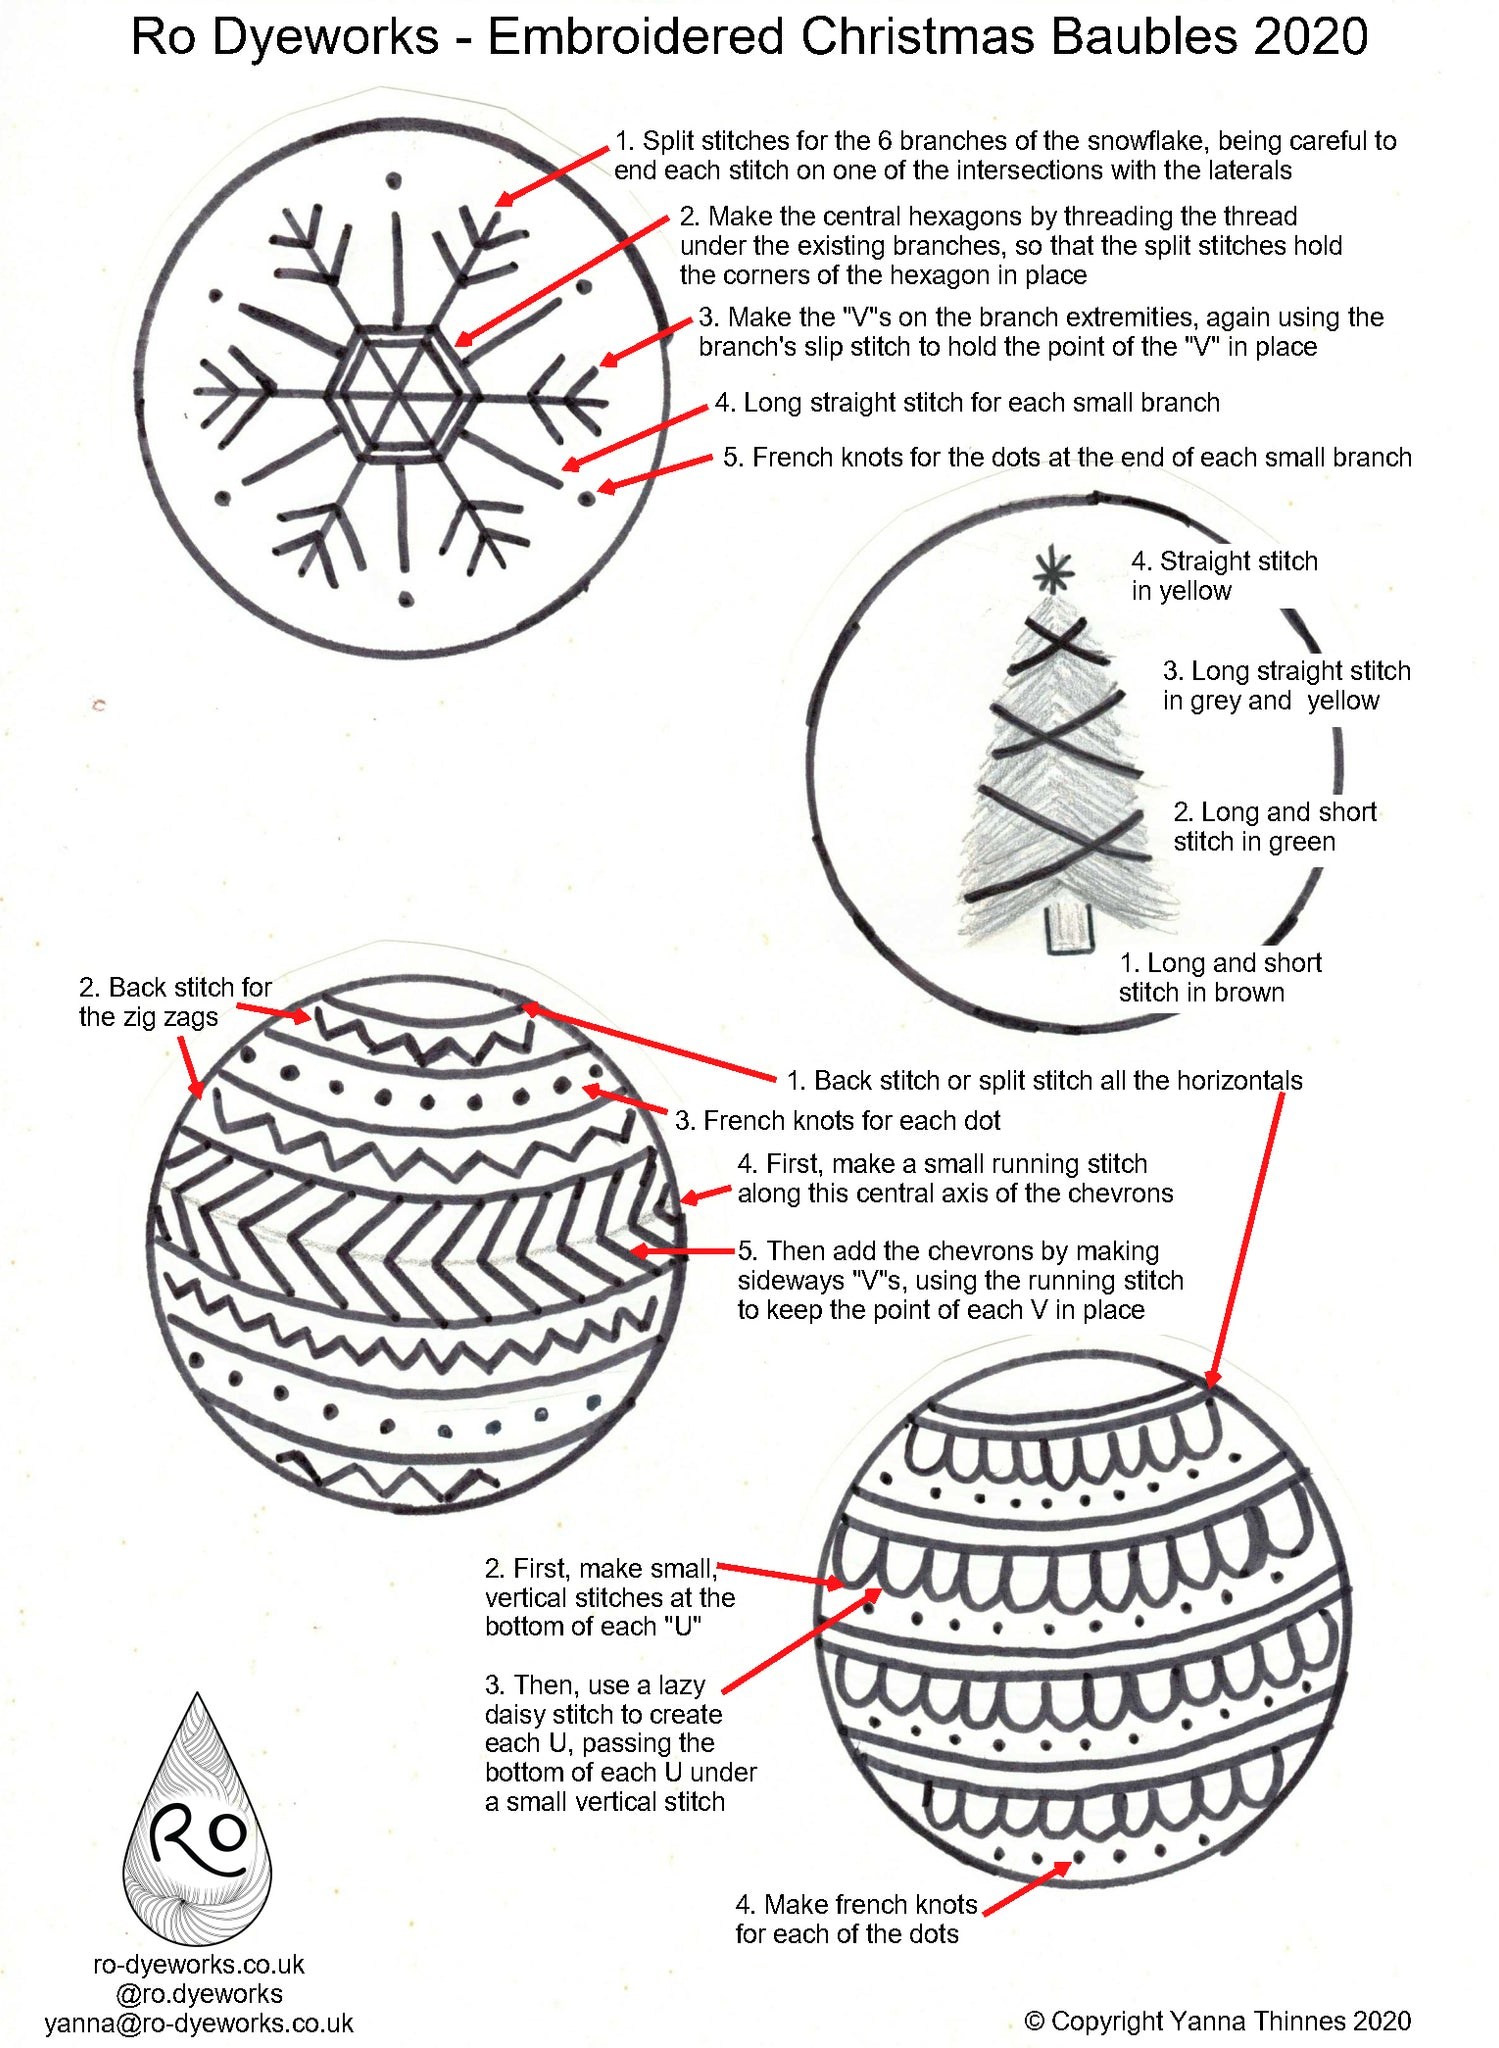 Christmas embroidery patterns and instructions for 4 baubles or other uses